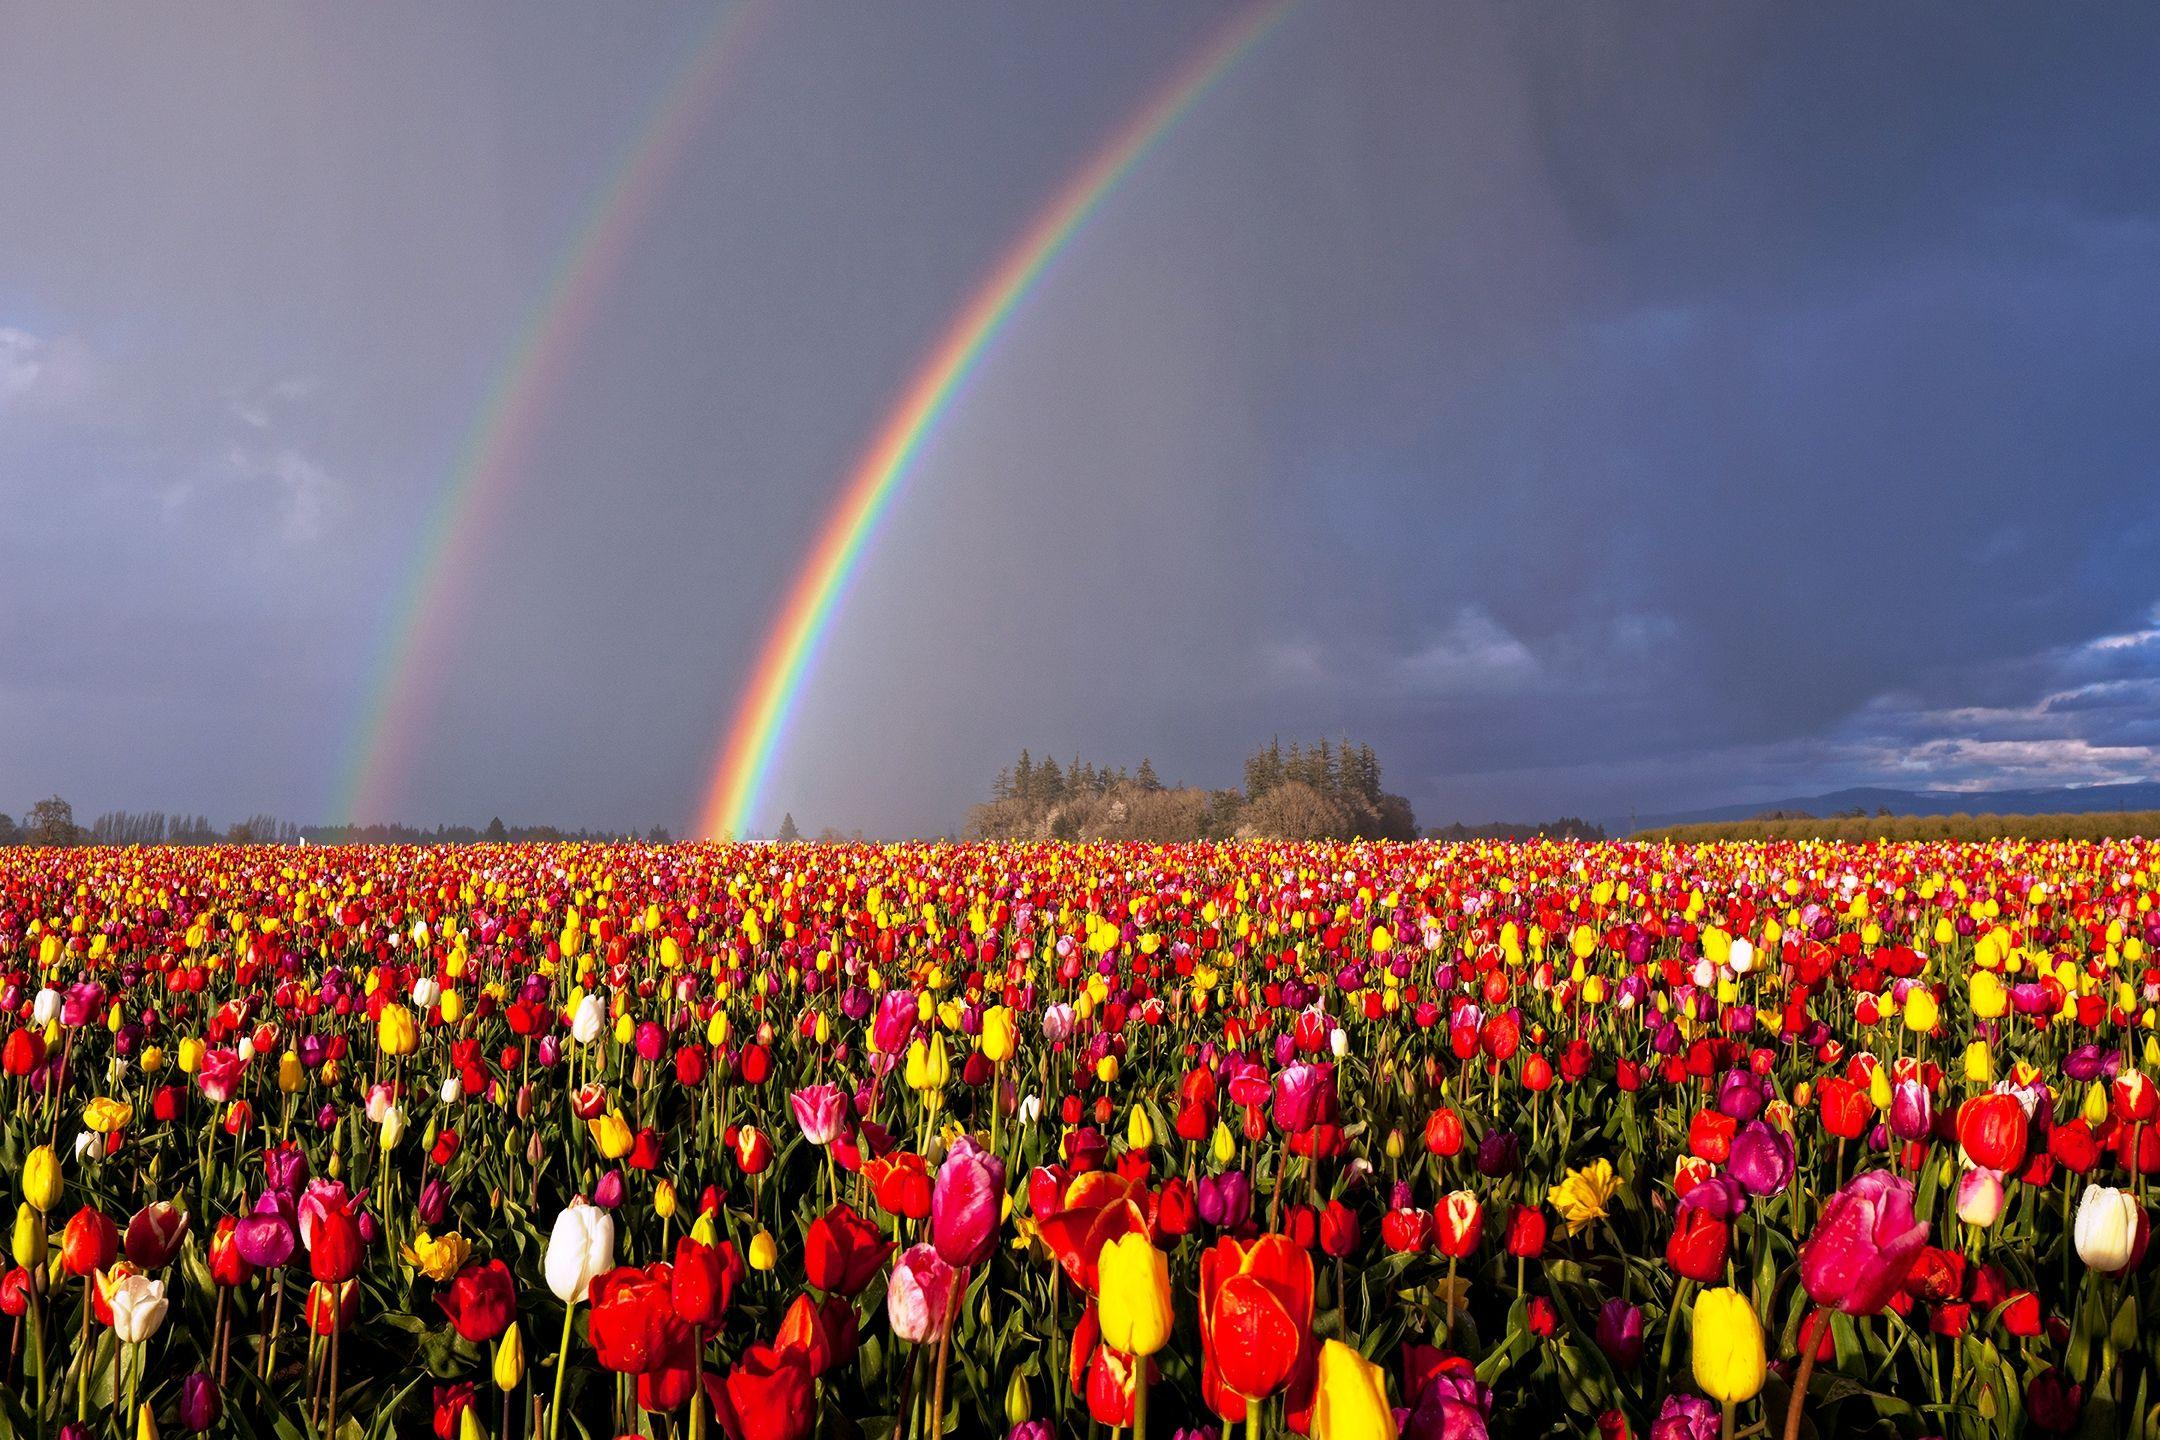 Spring Flowers Tulips Field Sunrise Grass Clouds: Rainbow Tulips Wallpapers